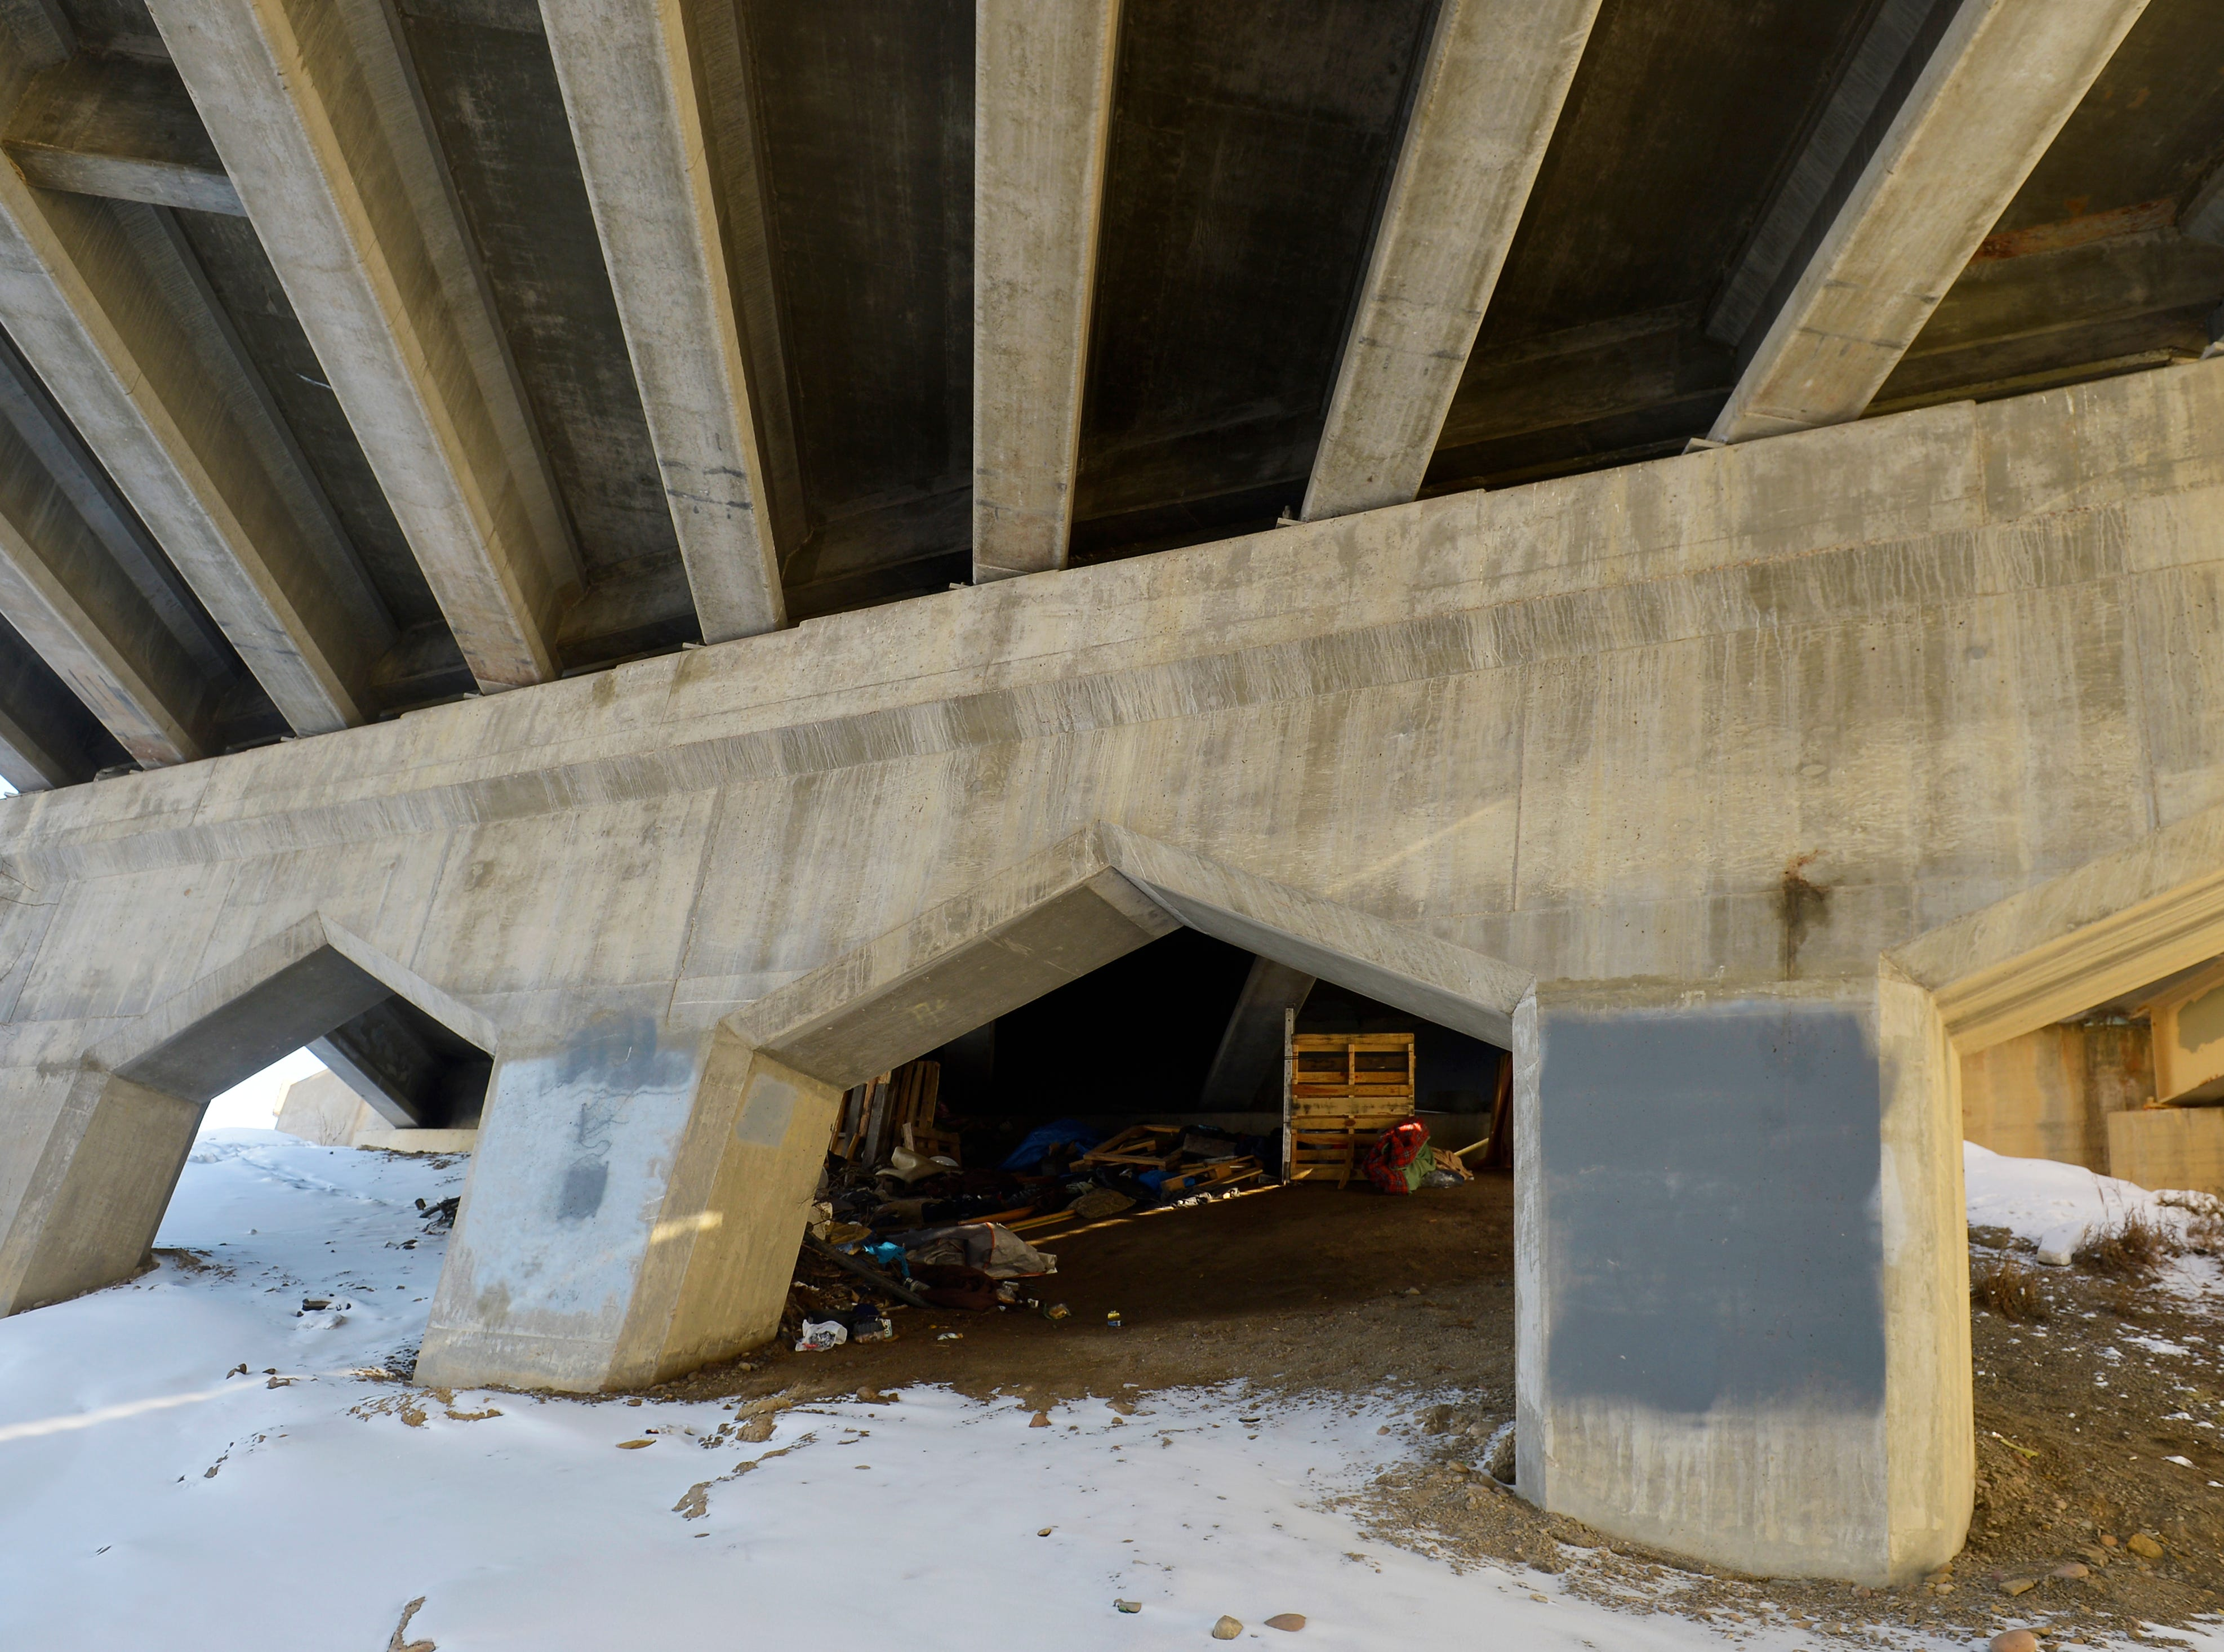 A homeless camp under the Warden Bridge that was abandoned in the severe weather of early February. Barbara Snider lived under this bridge when she died in January.